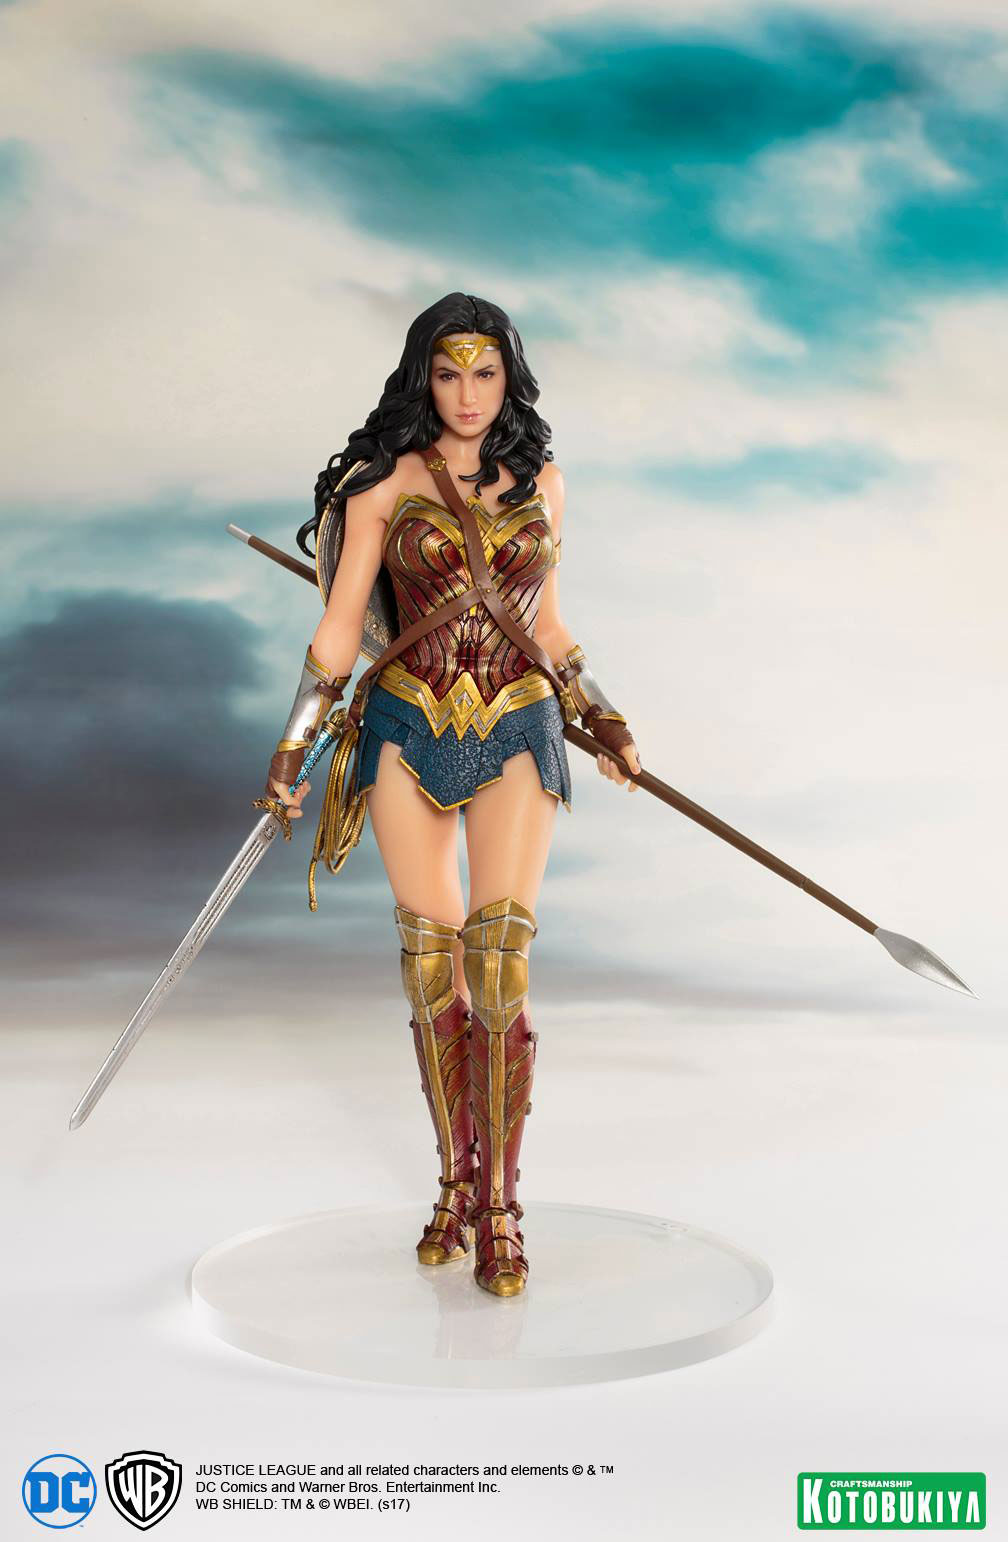 kotobukiya-justice-league-wonder-woman-statue